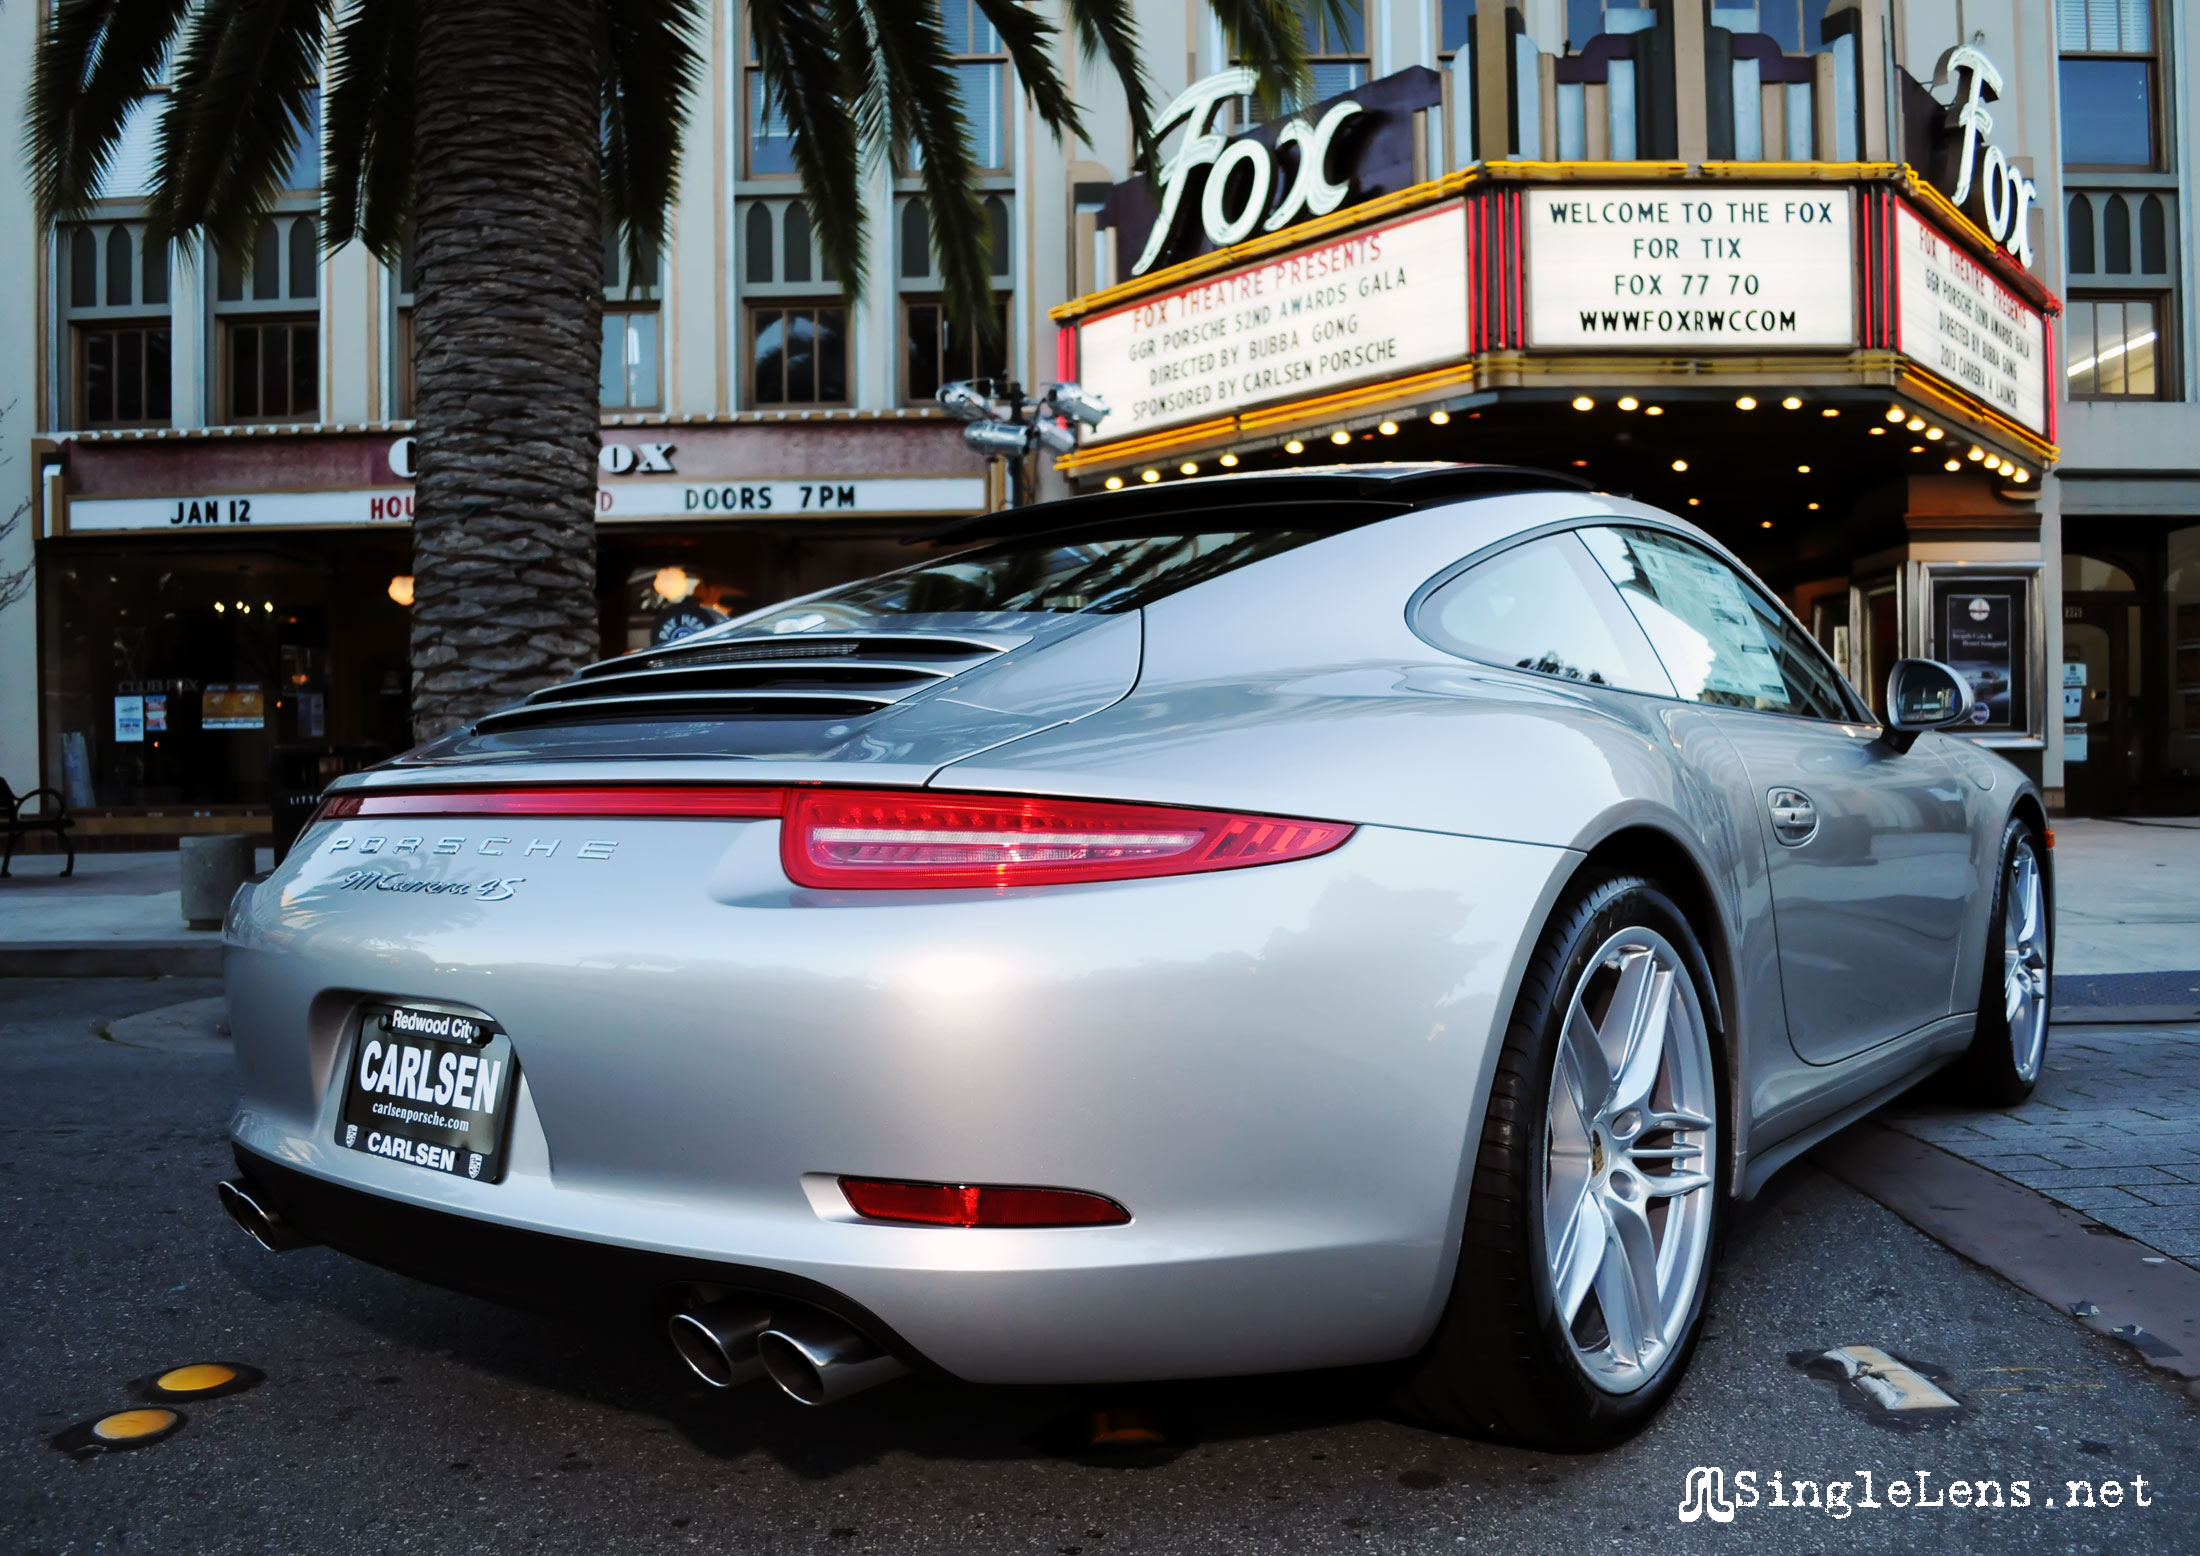 Porsche-at-Fox-Theatre